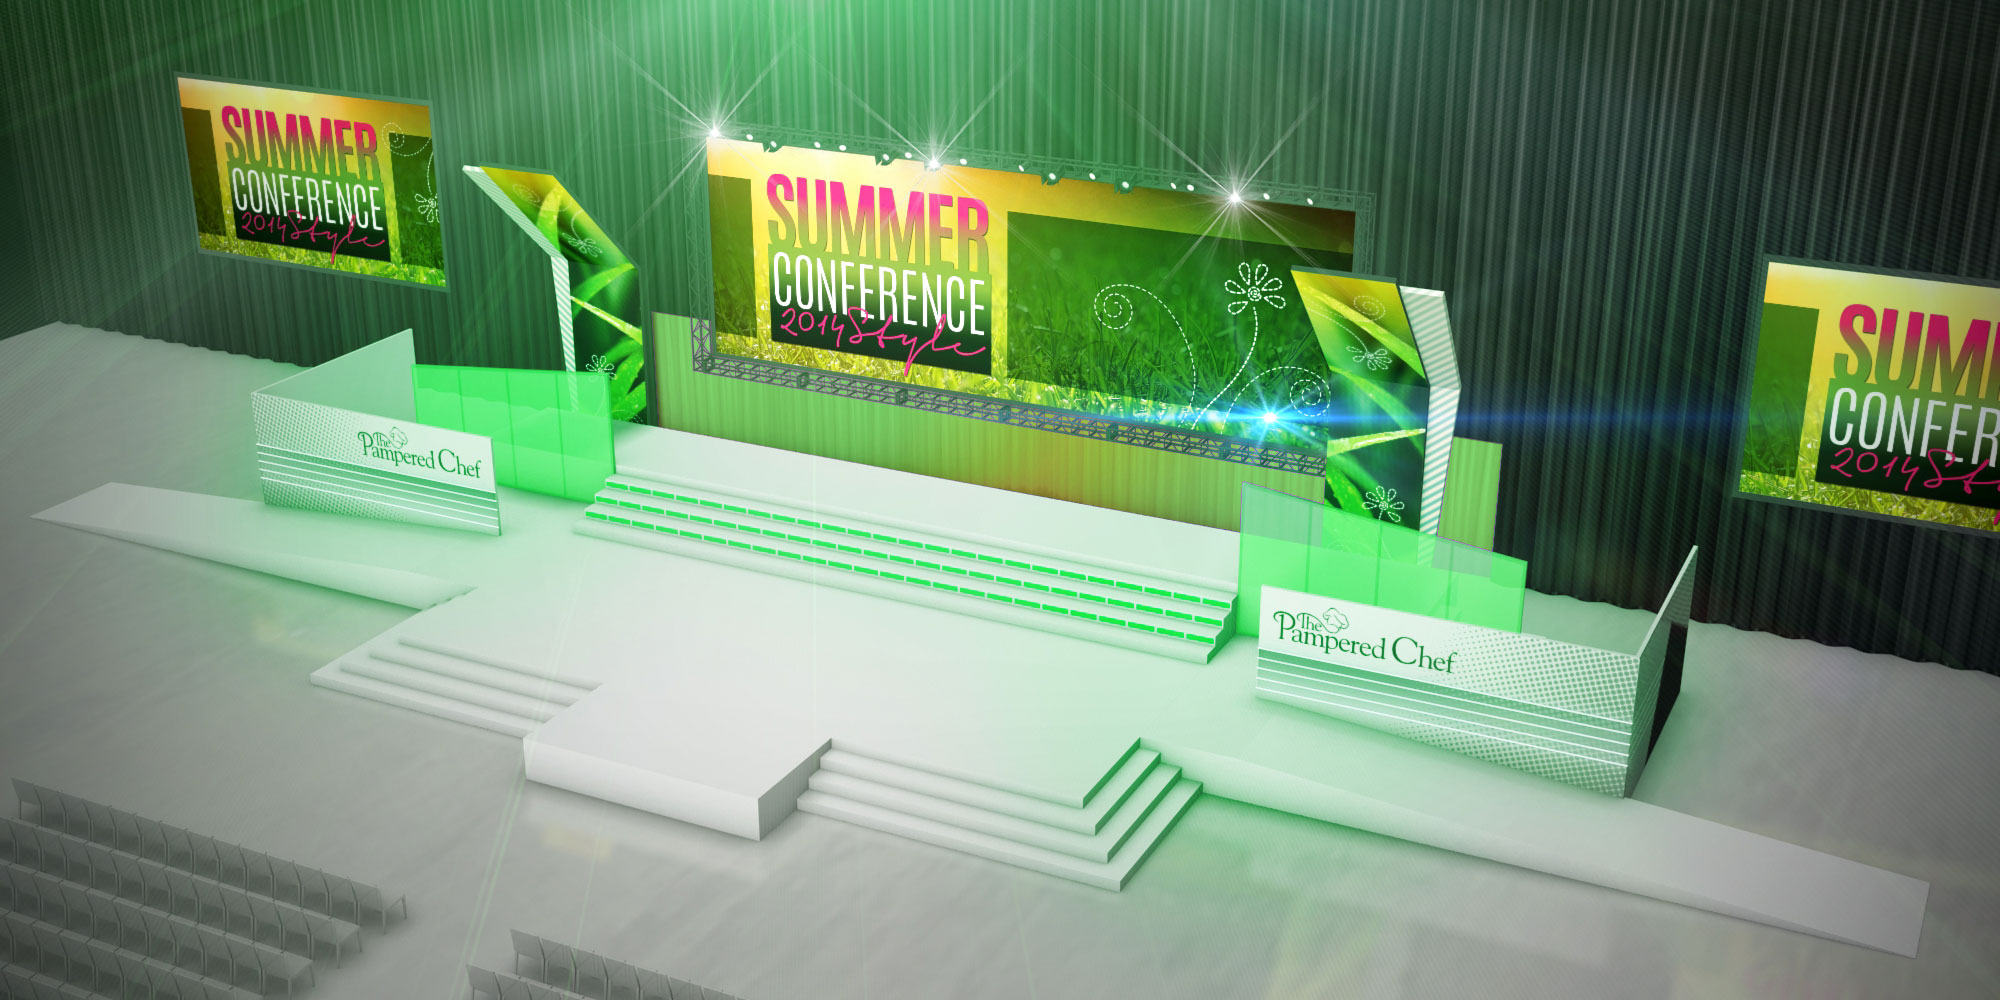 This is the session 1 design. It was used to kick off the event on day 1. Fresh and summery, eh?